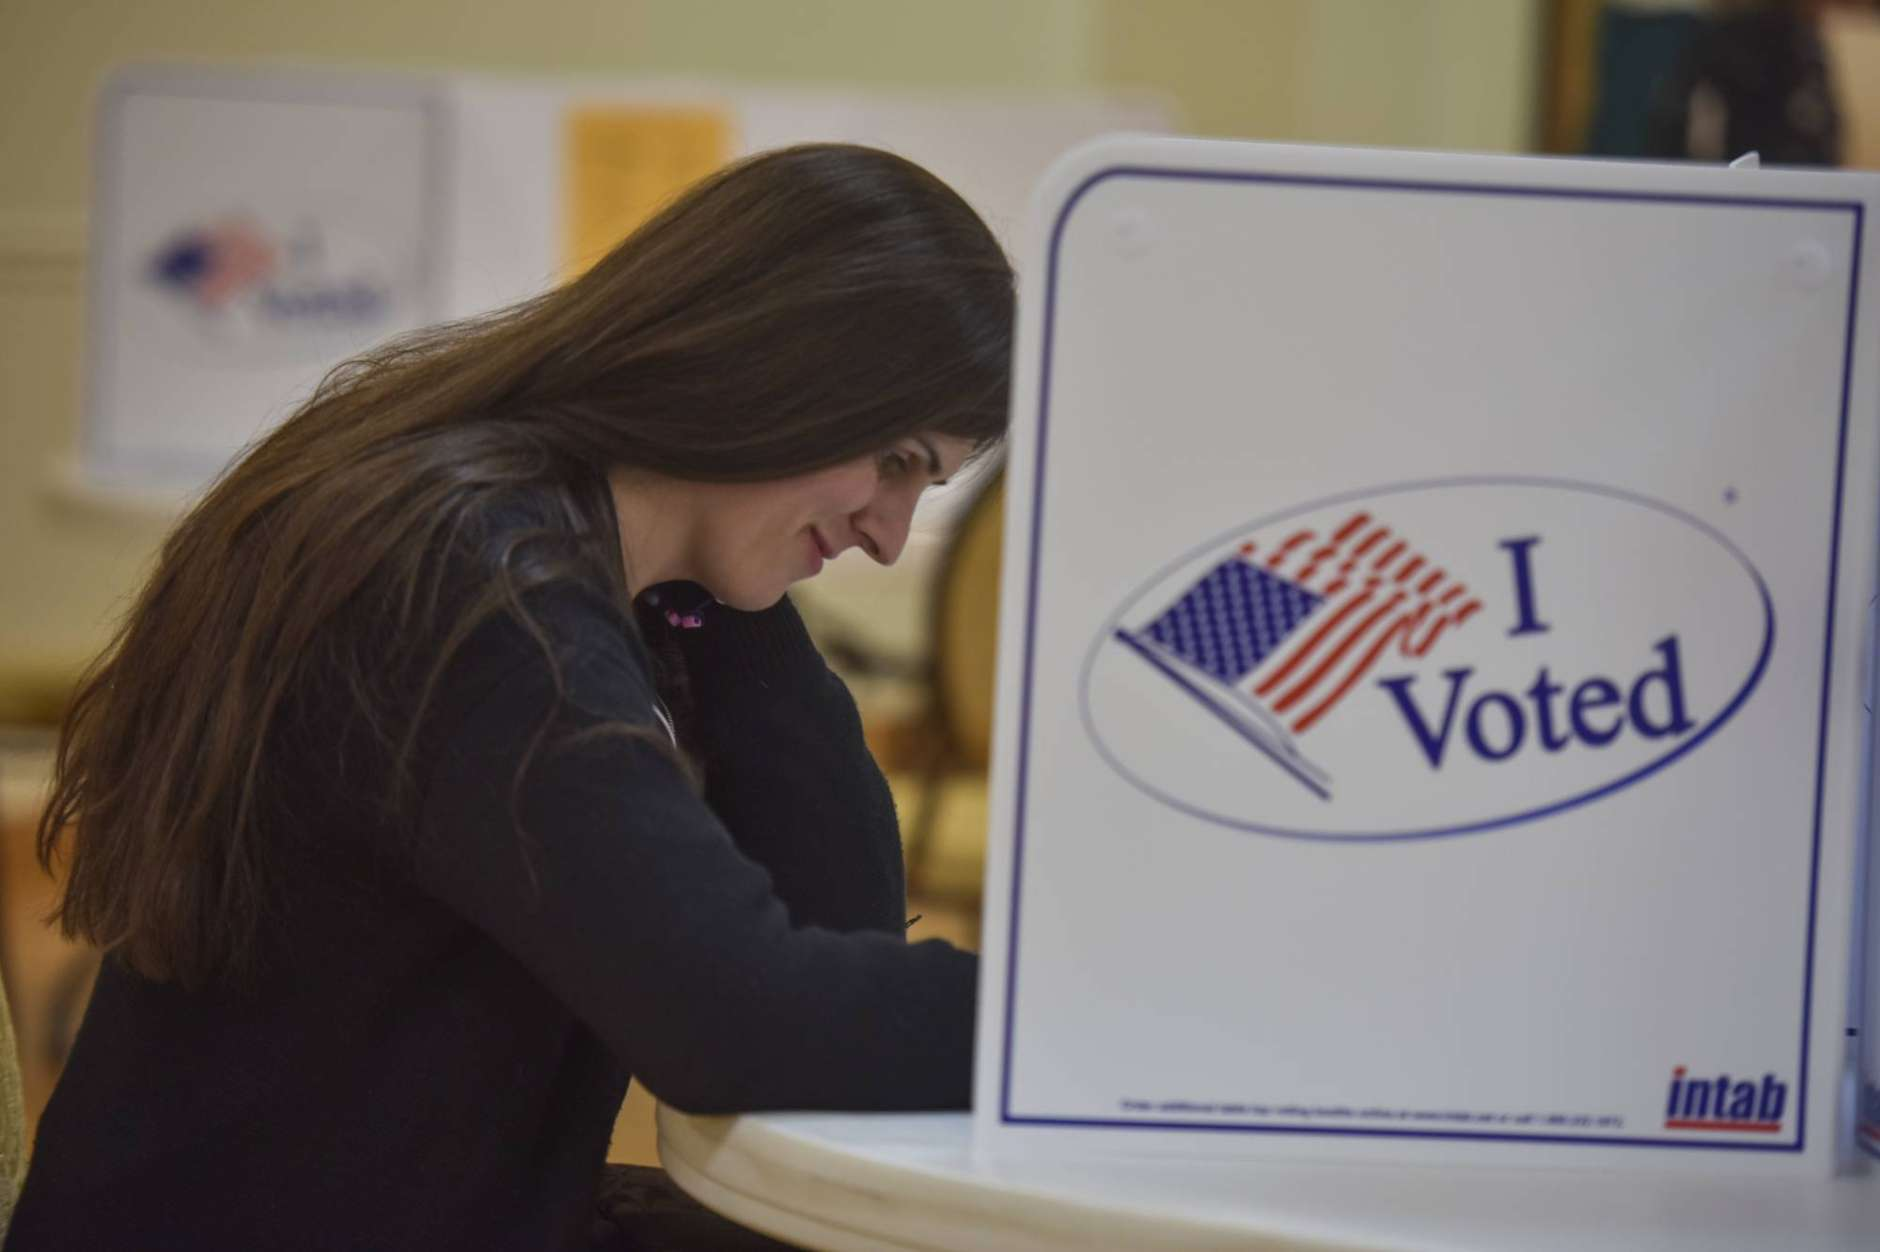 Danica Roem, who is running for house of delegates against GOP incumbent Robert Marshall, casts her vote at Buckhall Volunteer Fire Department on Tuesday, Nov. 7, 2017, in Manassas, Va. If Roem wins, she would be the first transgender legislator elected in the USA. (Jahi Chikwendiu/The Washington Post via AP)